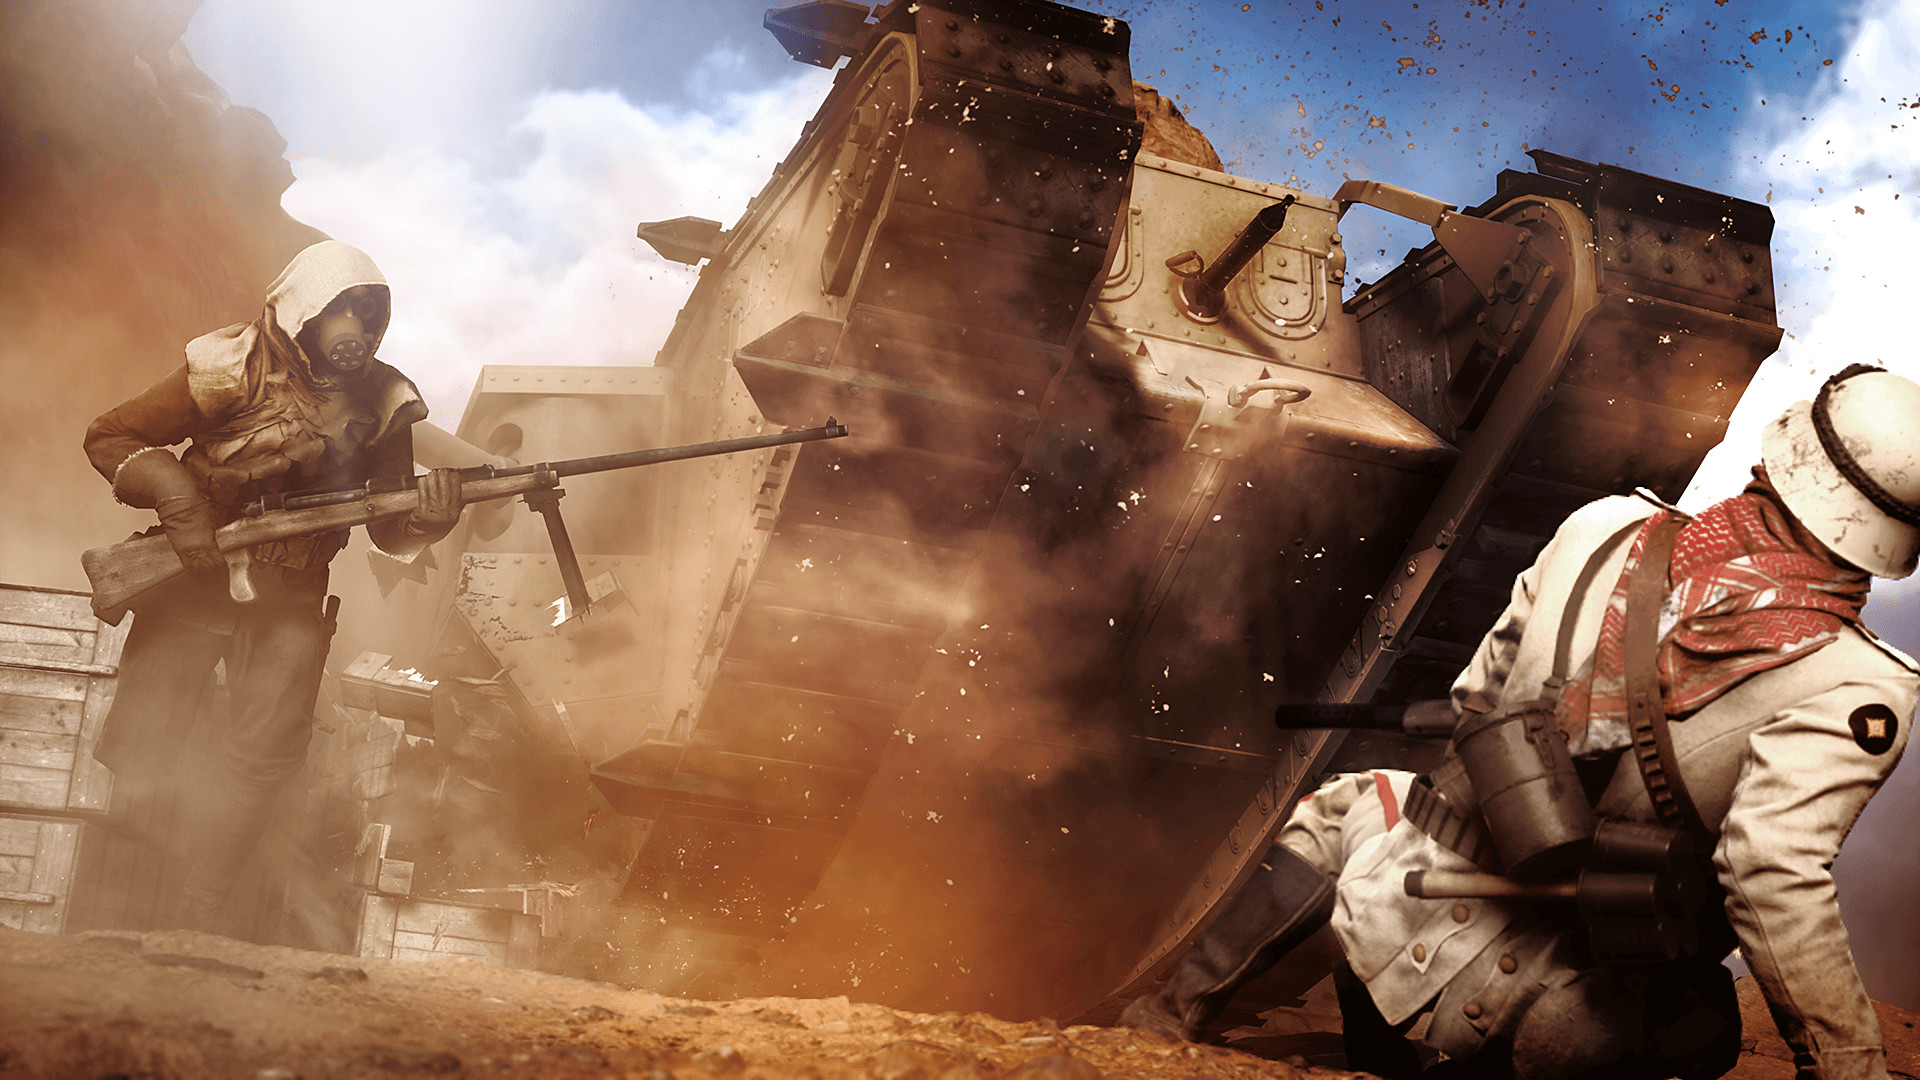 Find the best gaming PC for Battlefield 1 ™